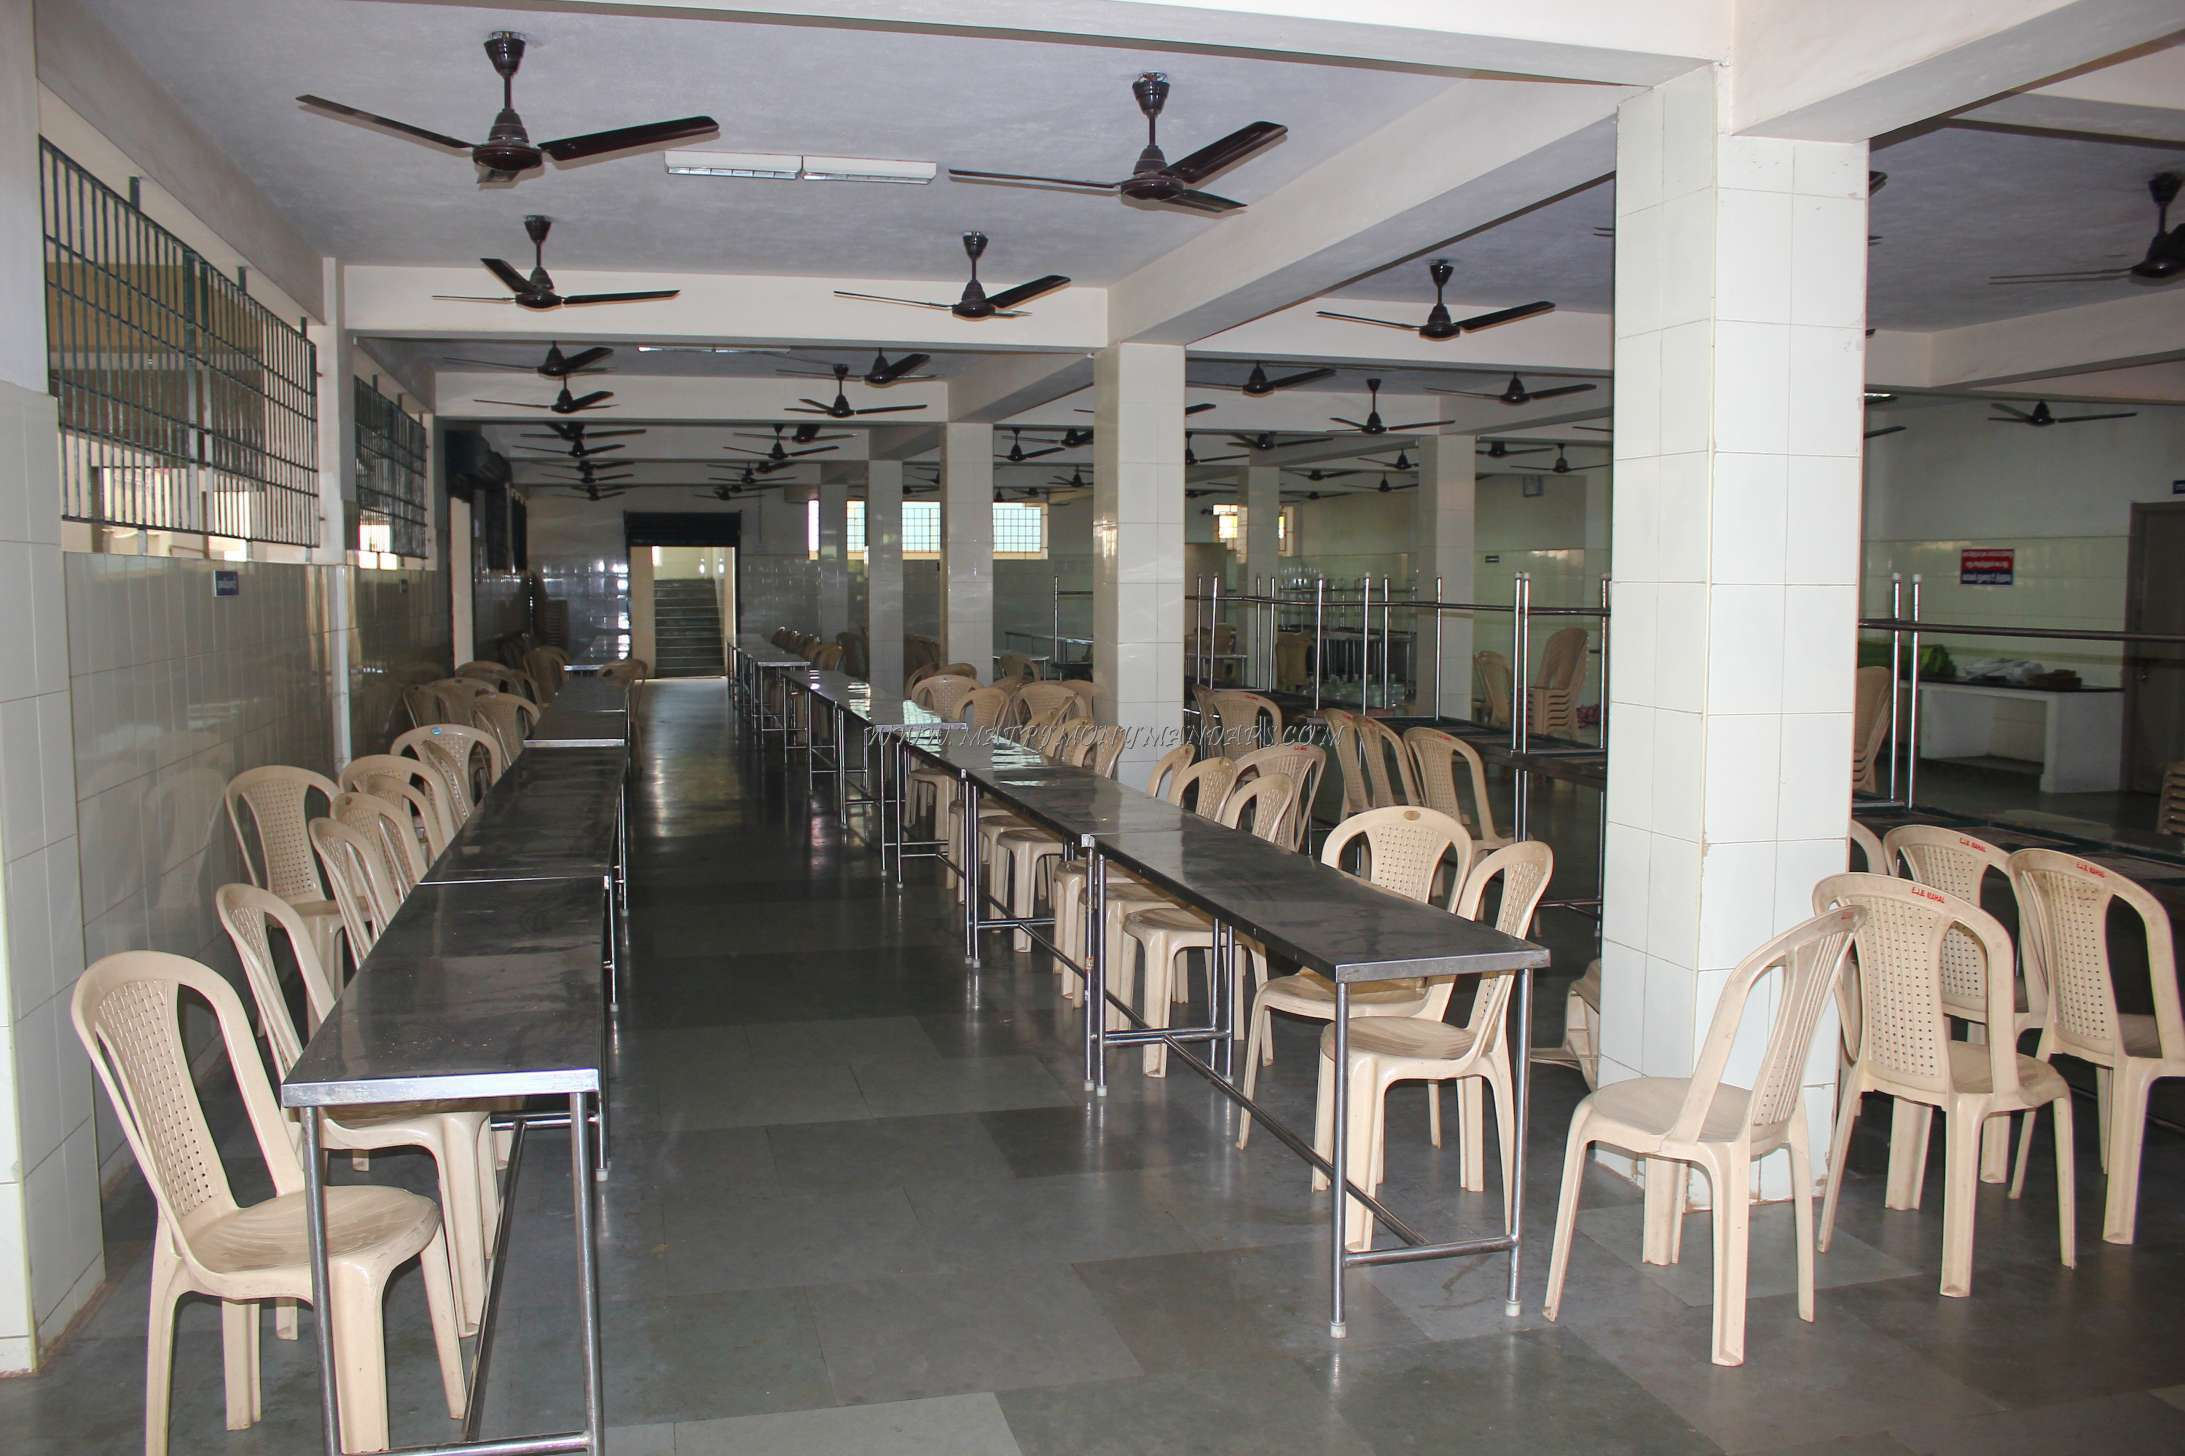 Find the availability of the EJB Mahal (A/C) in Ambattur, Chennai and avail special offers